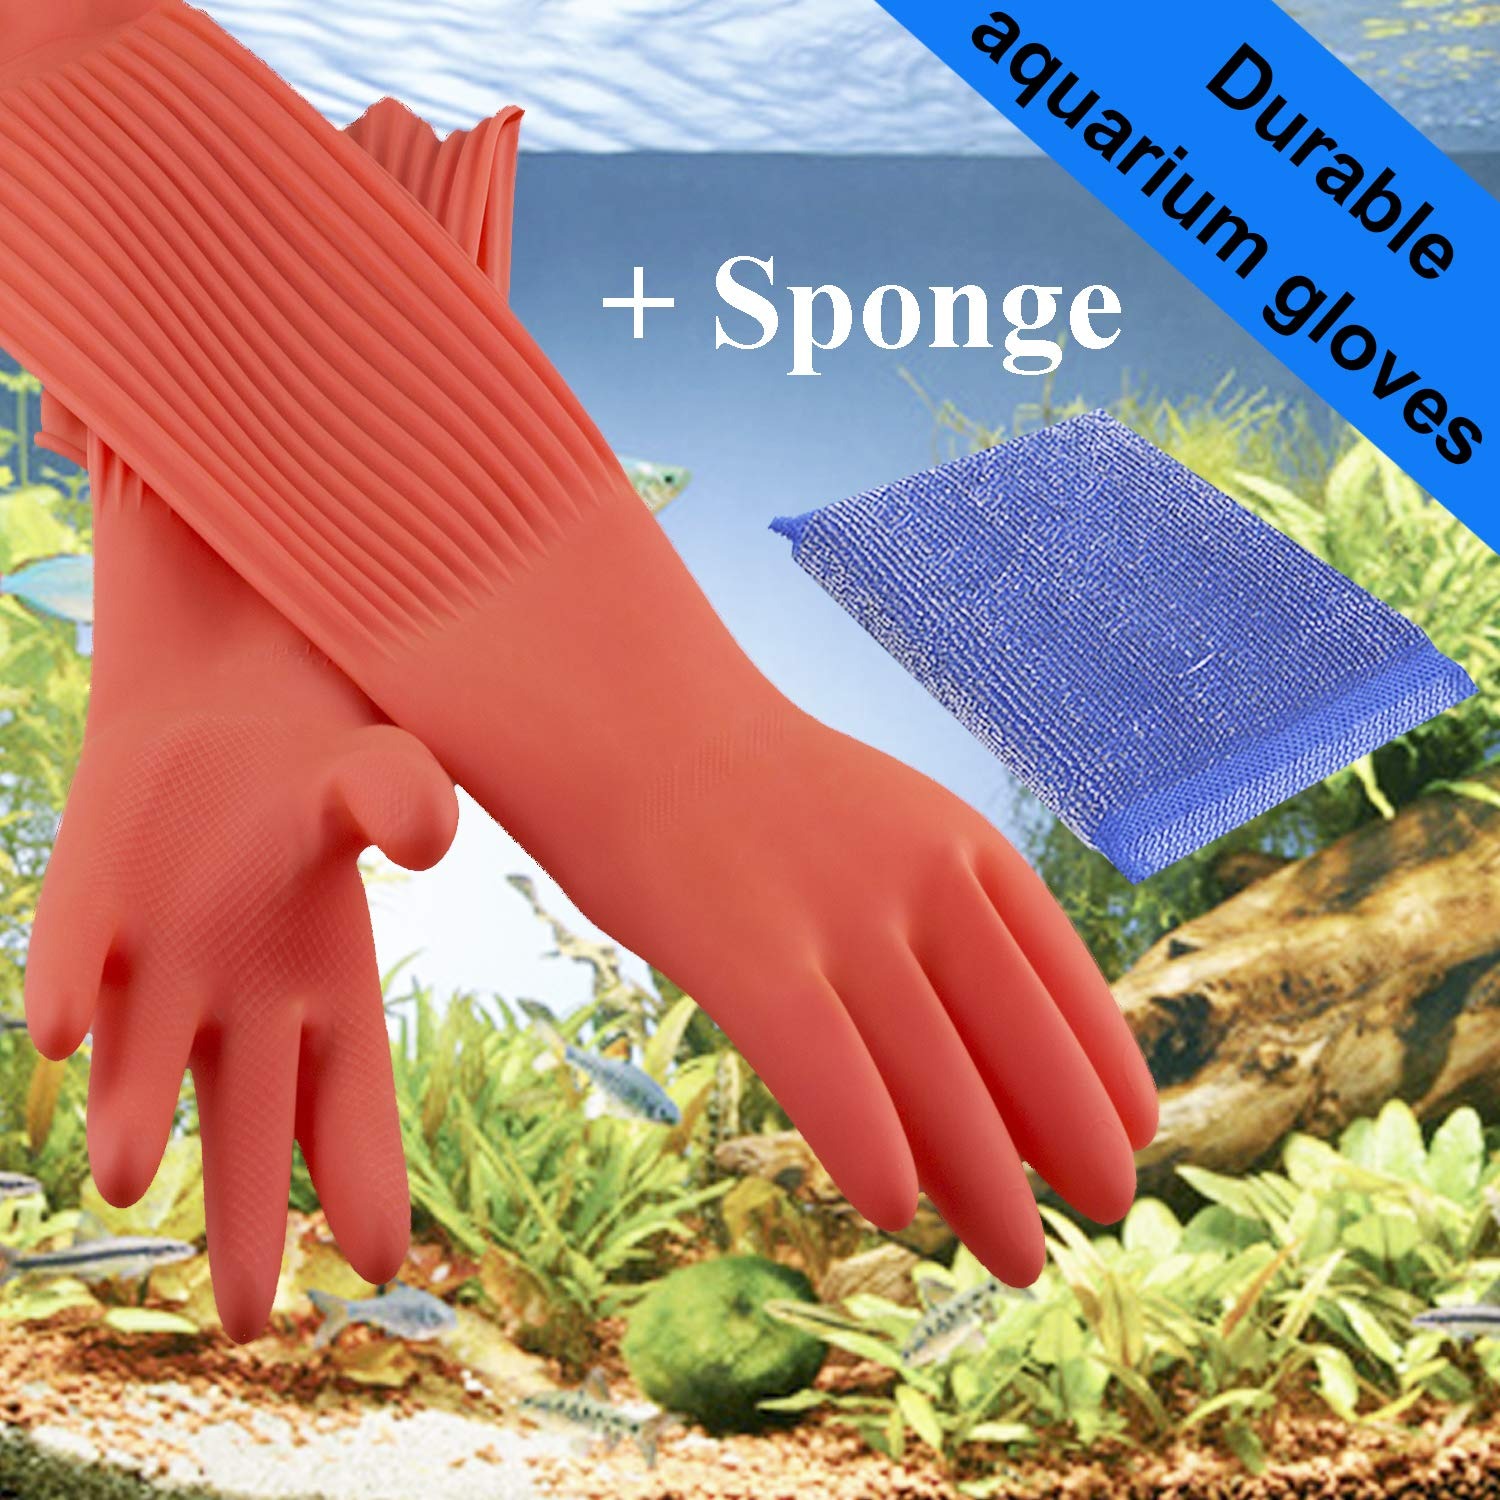 Wallko's pet store Aquarium Gloves for Fish Tank Maintenance - 2 Sizes! Small and Large - 22 inch Long Rubber Gloves Keep Your Hands and Arms Dry - Prevents Contamination, Allergies. by Wallko's pet store